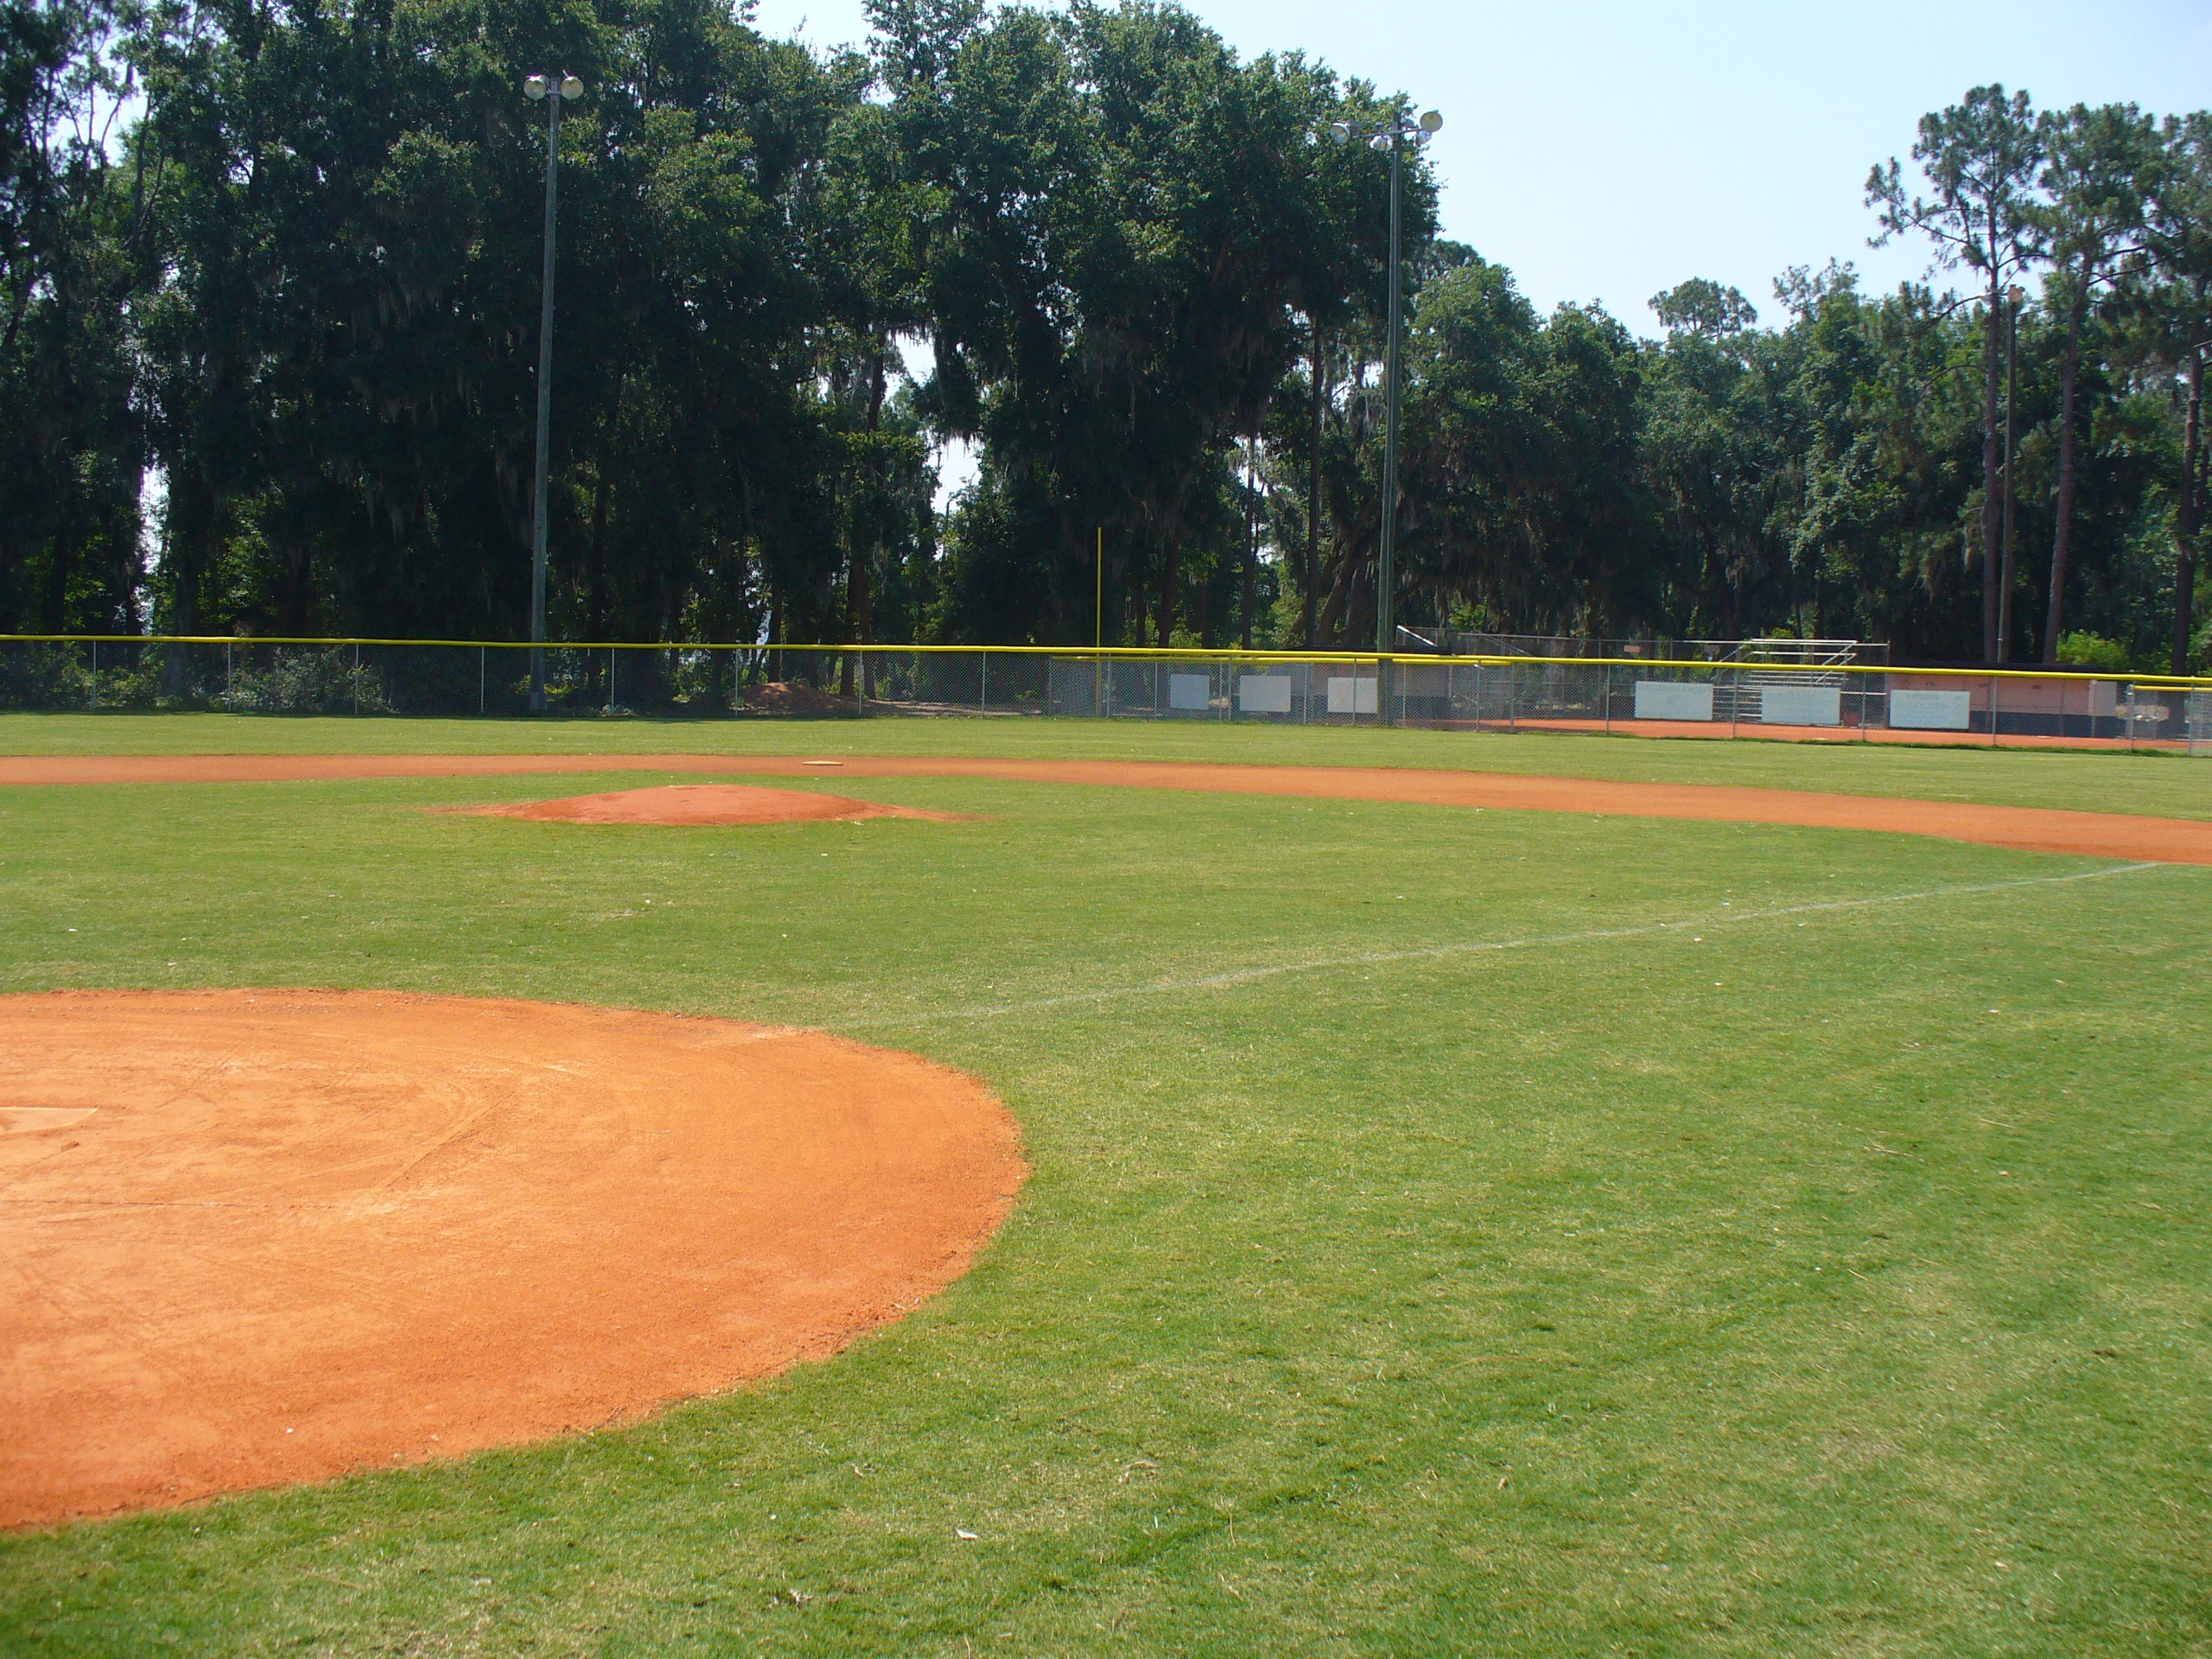 A baseball field at Westside Park